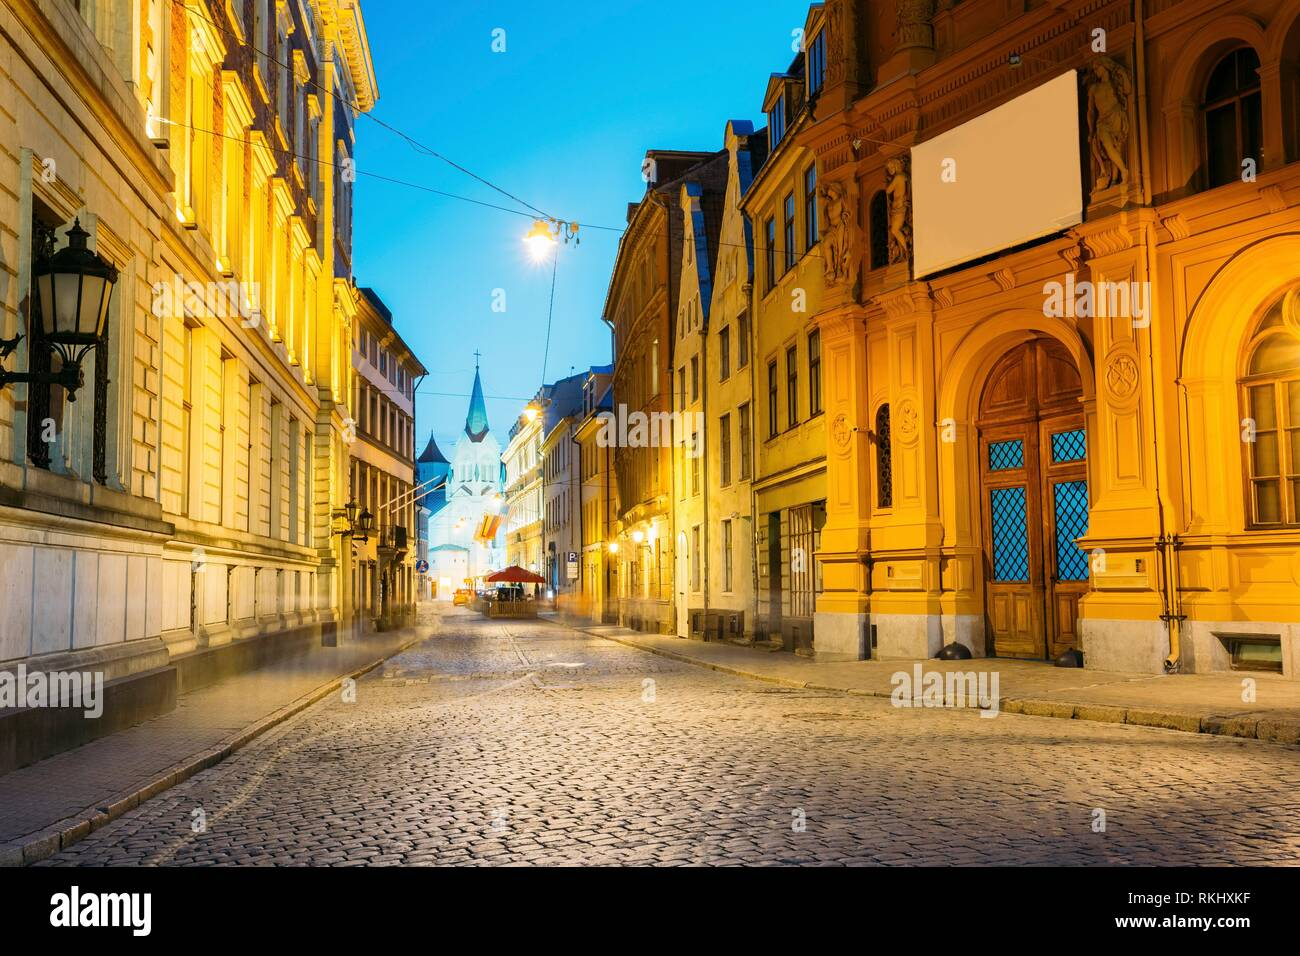 Riga, Latvia. Evening View Of Deserted Pils Street With Ancient Architecture In Bright Warm Yellow Illumination Under Summer Blue Sky. Our Lady Of - Stock Image